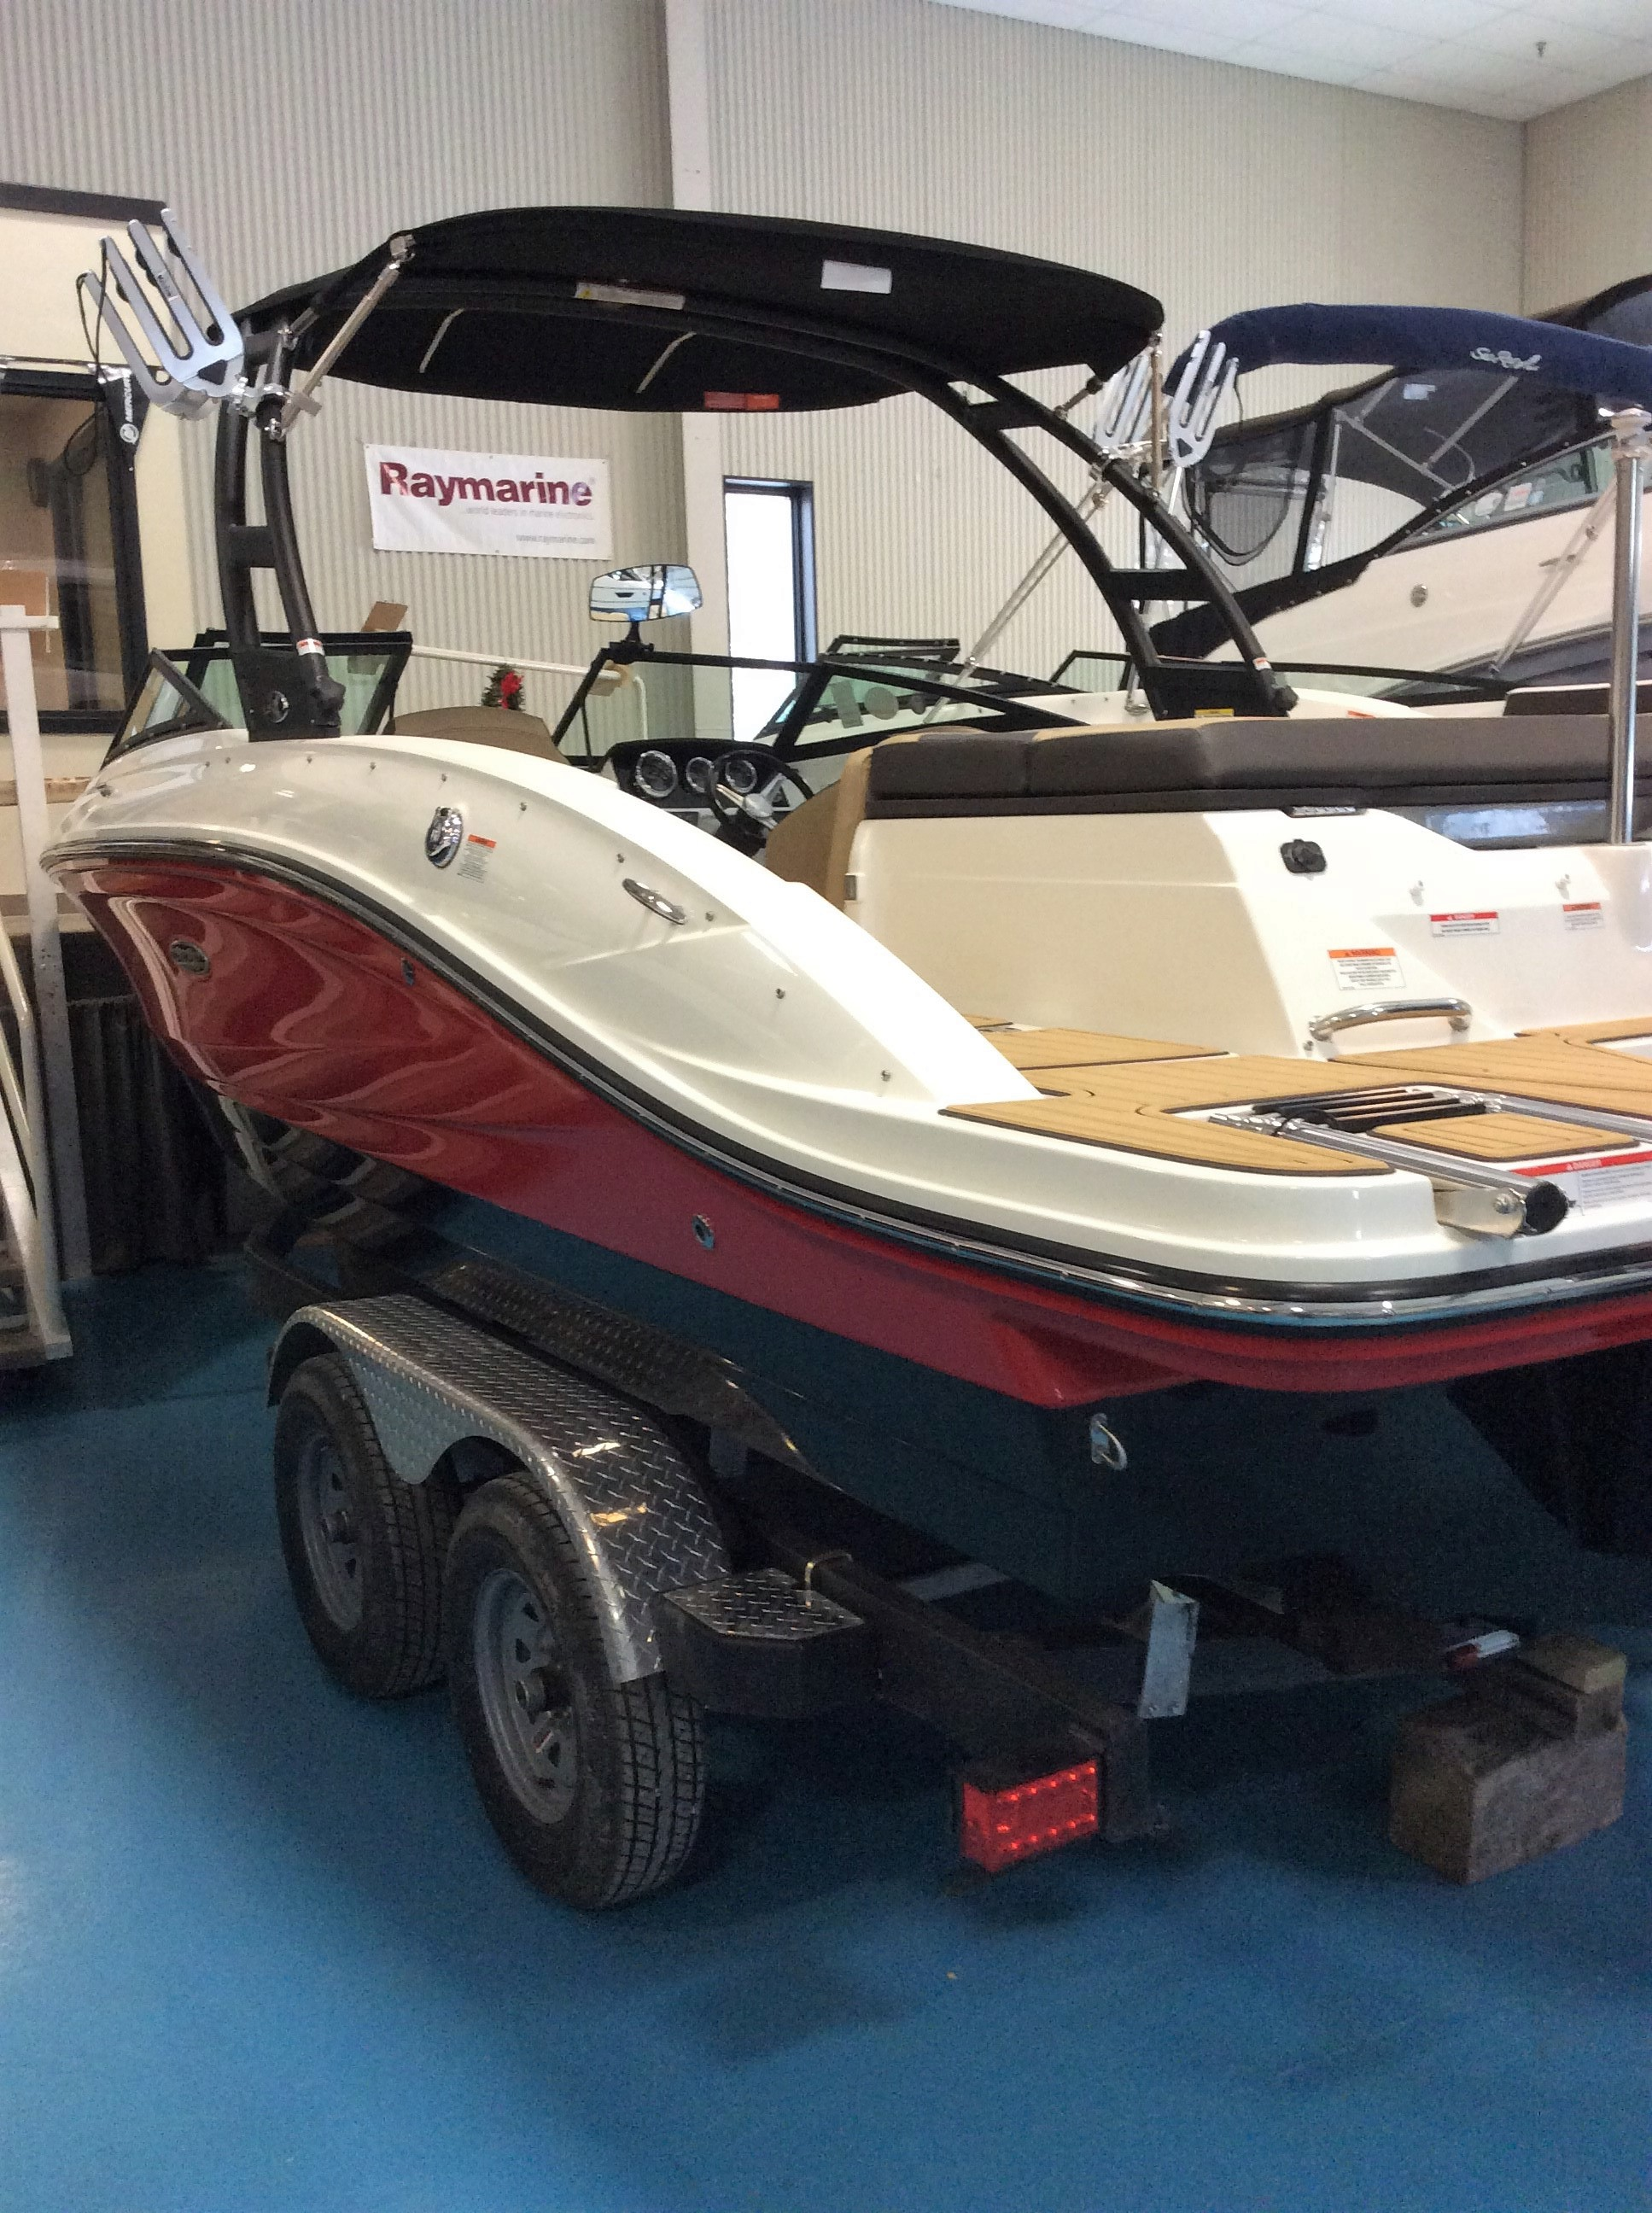 NEW 2019 Sea Ray SPX 210 OB - Hutchinson's Boat Works